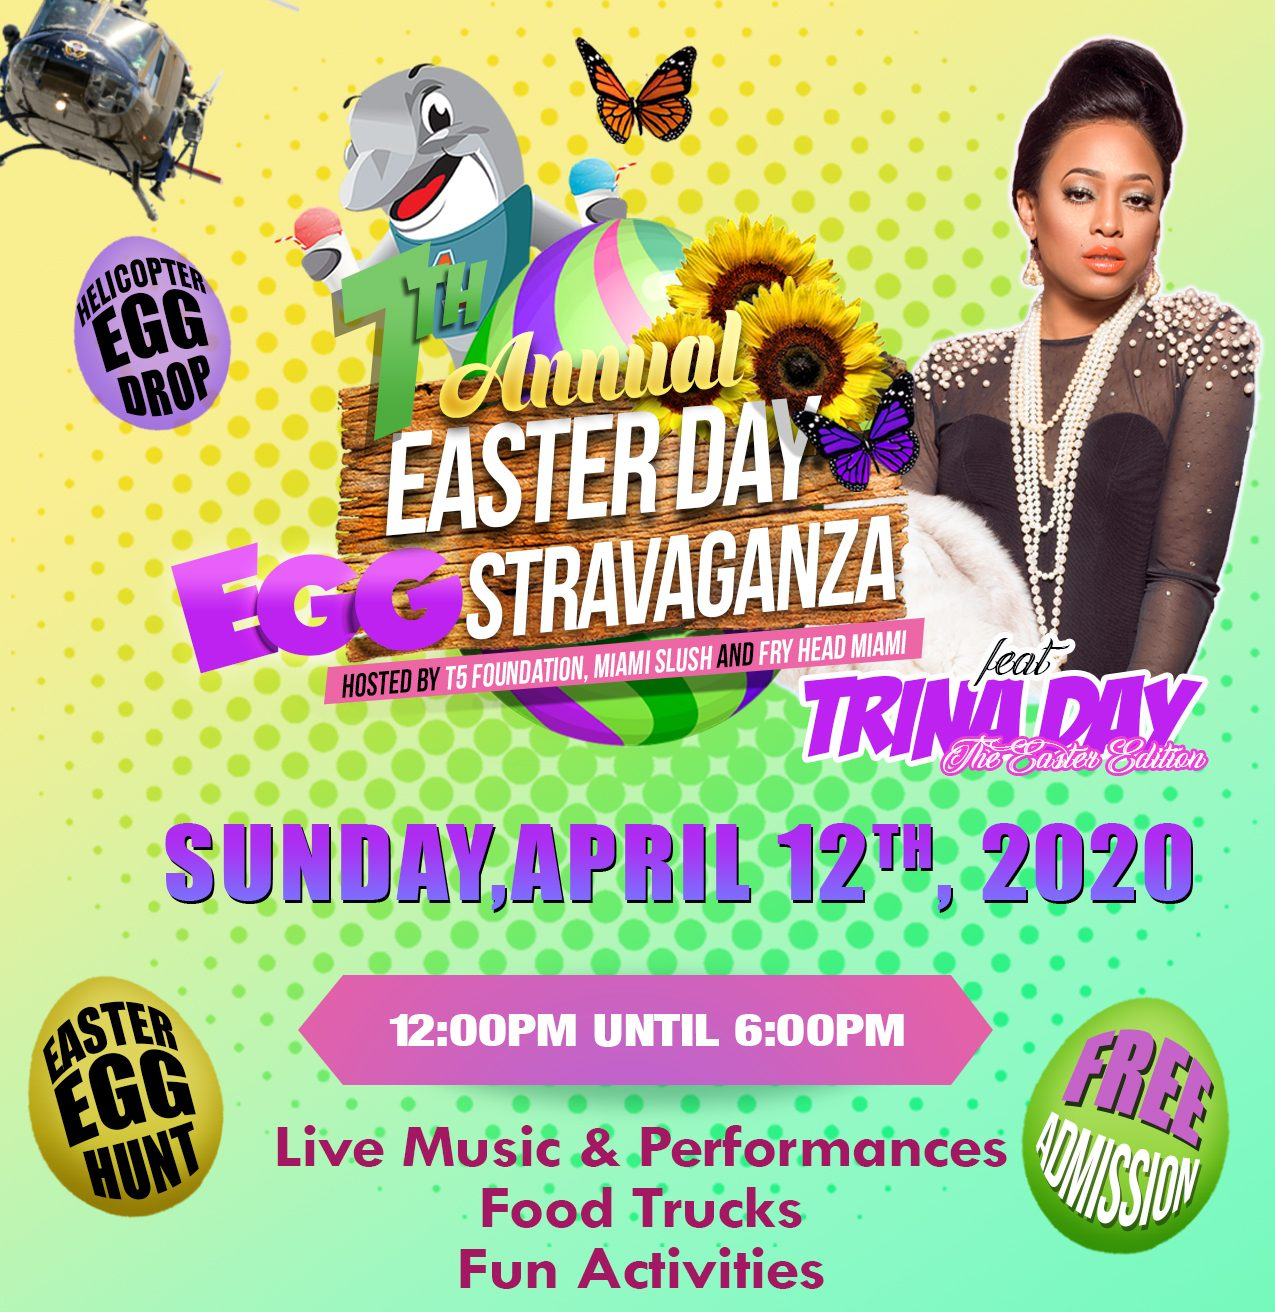 Easter Day Eggtravaganza